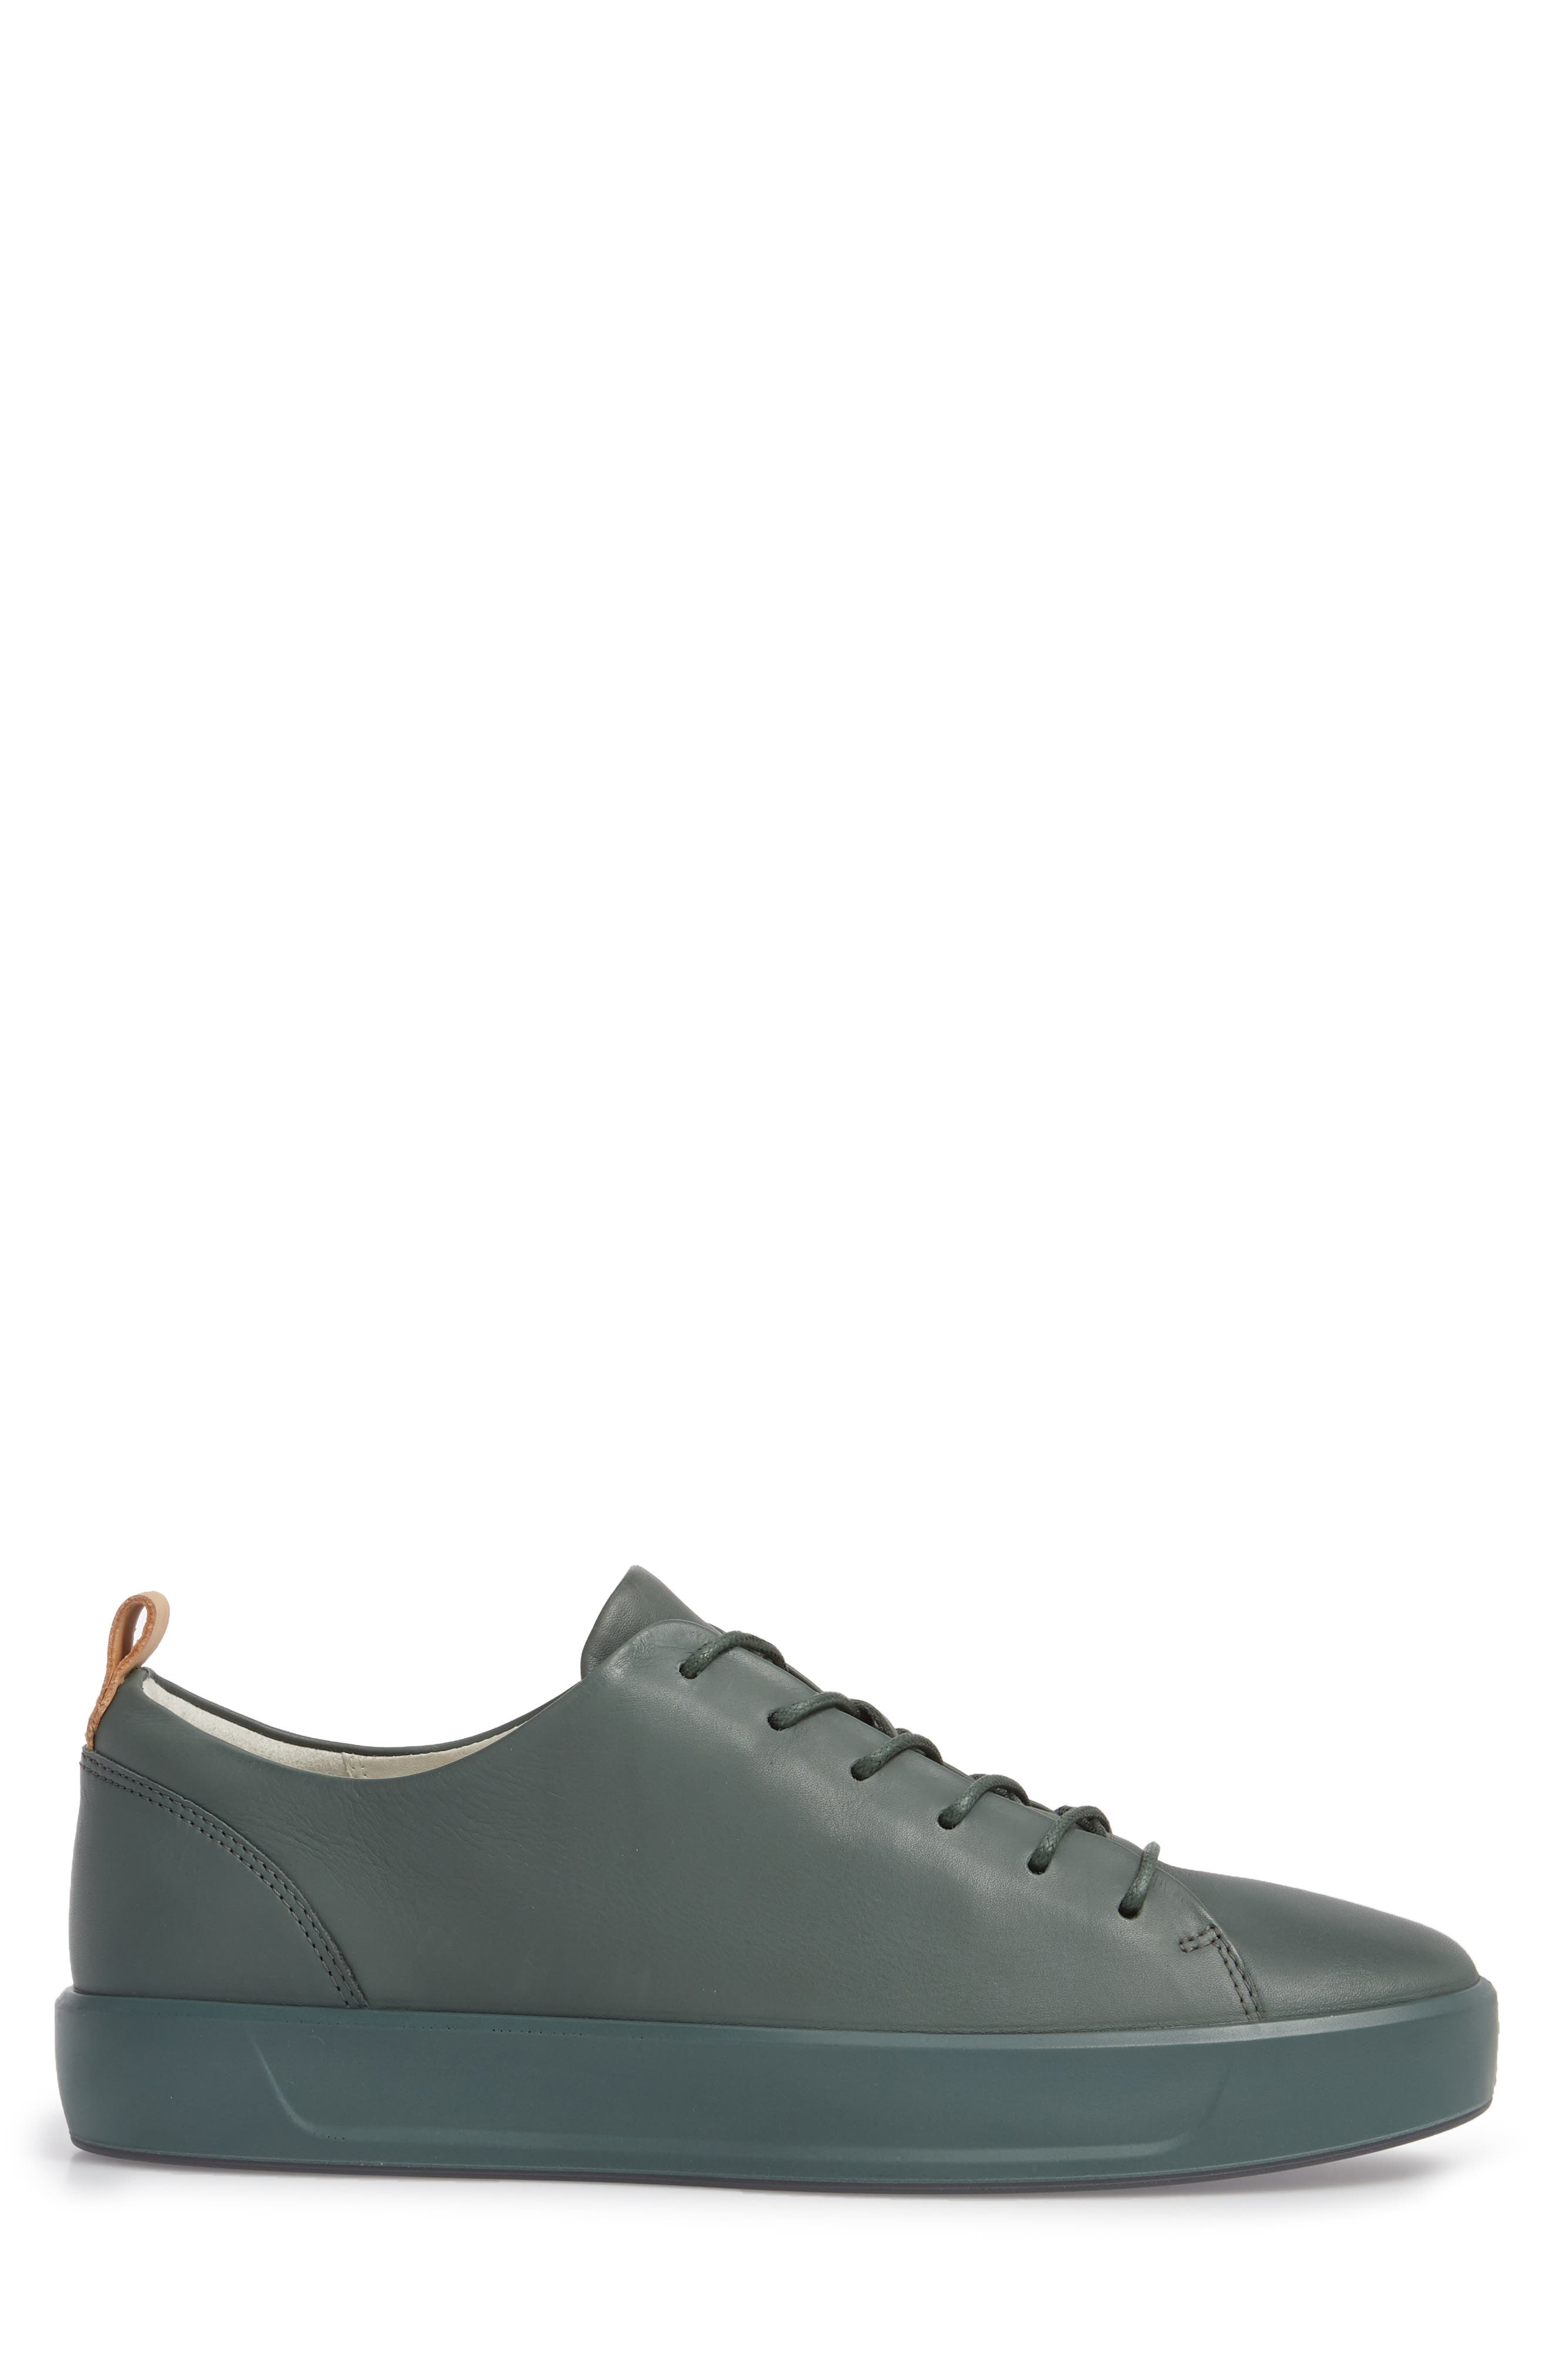 Soft 8 Low Top Sneaker,                             Alternate thumbnail 3, color,                             Military Sage Leather